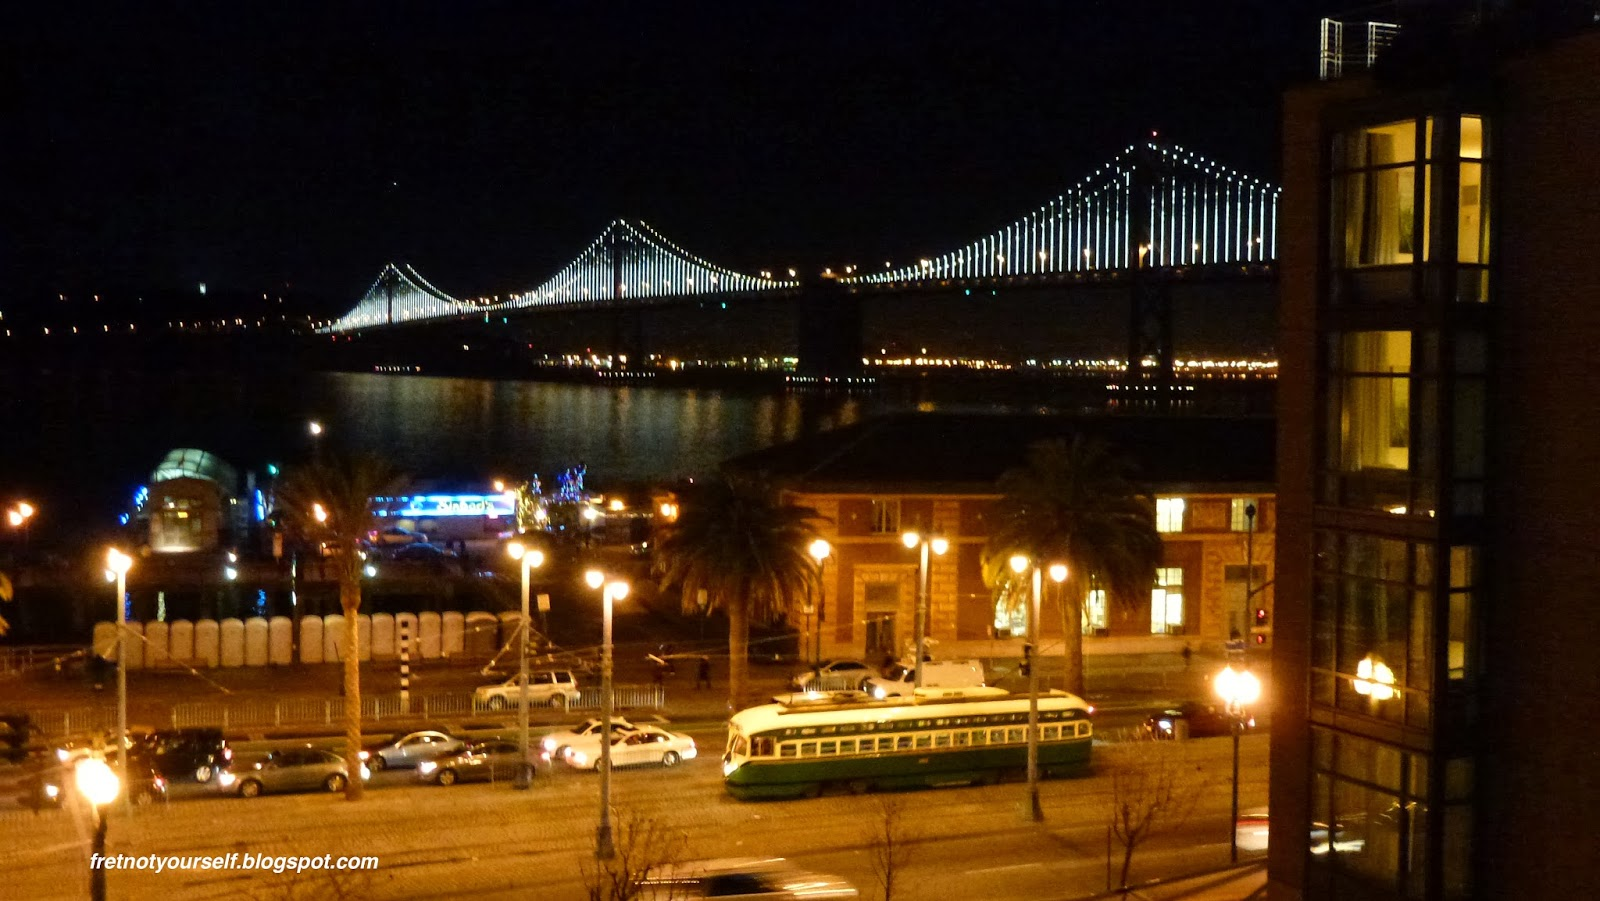 The LED lights on the cables and supports glow against the dark sky and waters of San Francisco Bay. A yellow and green streetcar passes along Embarcadero Street in the foreground.